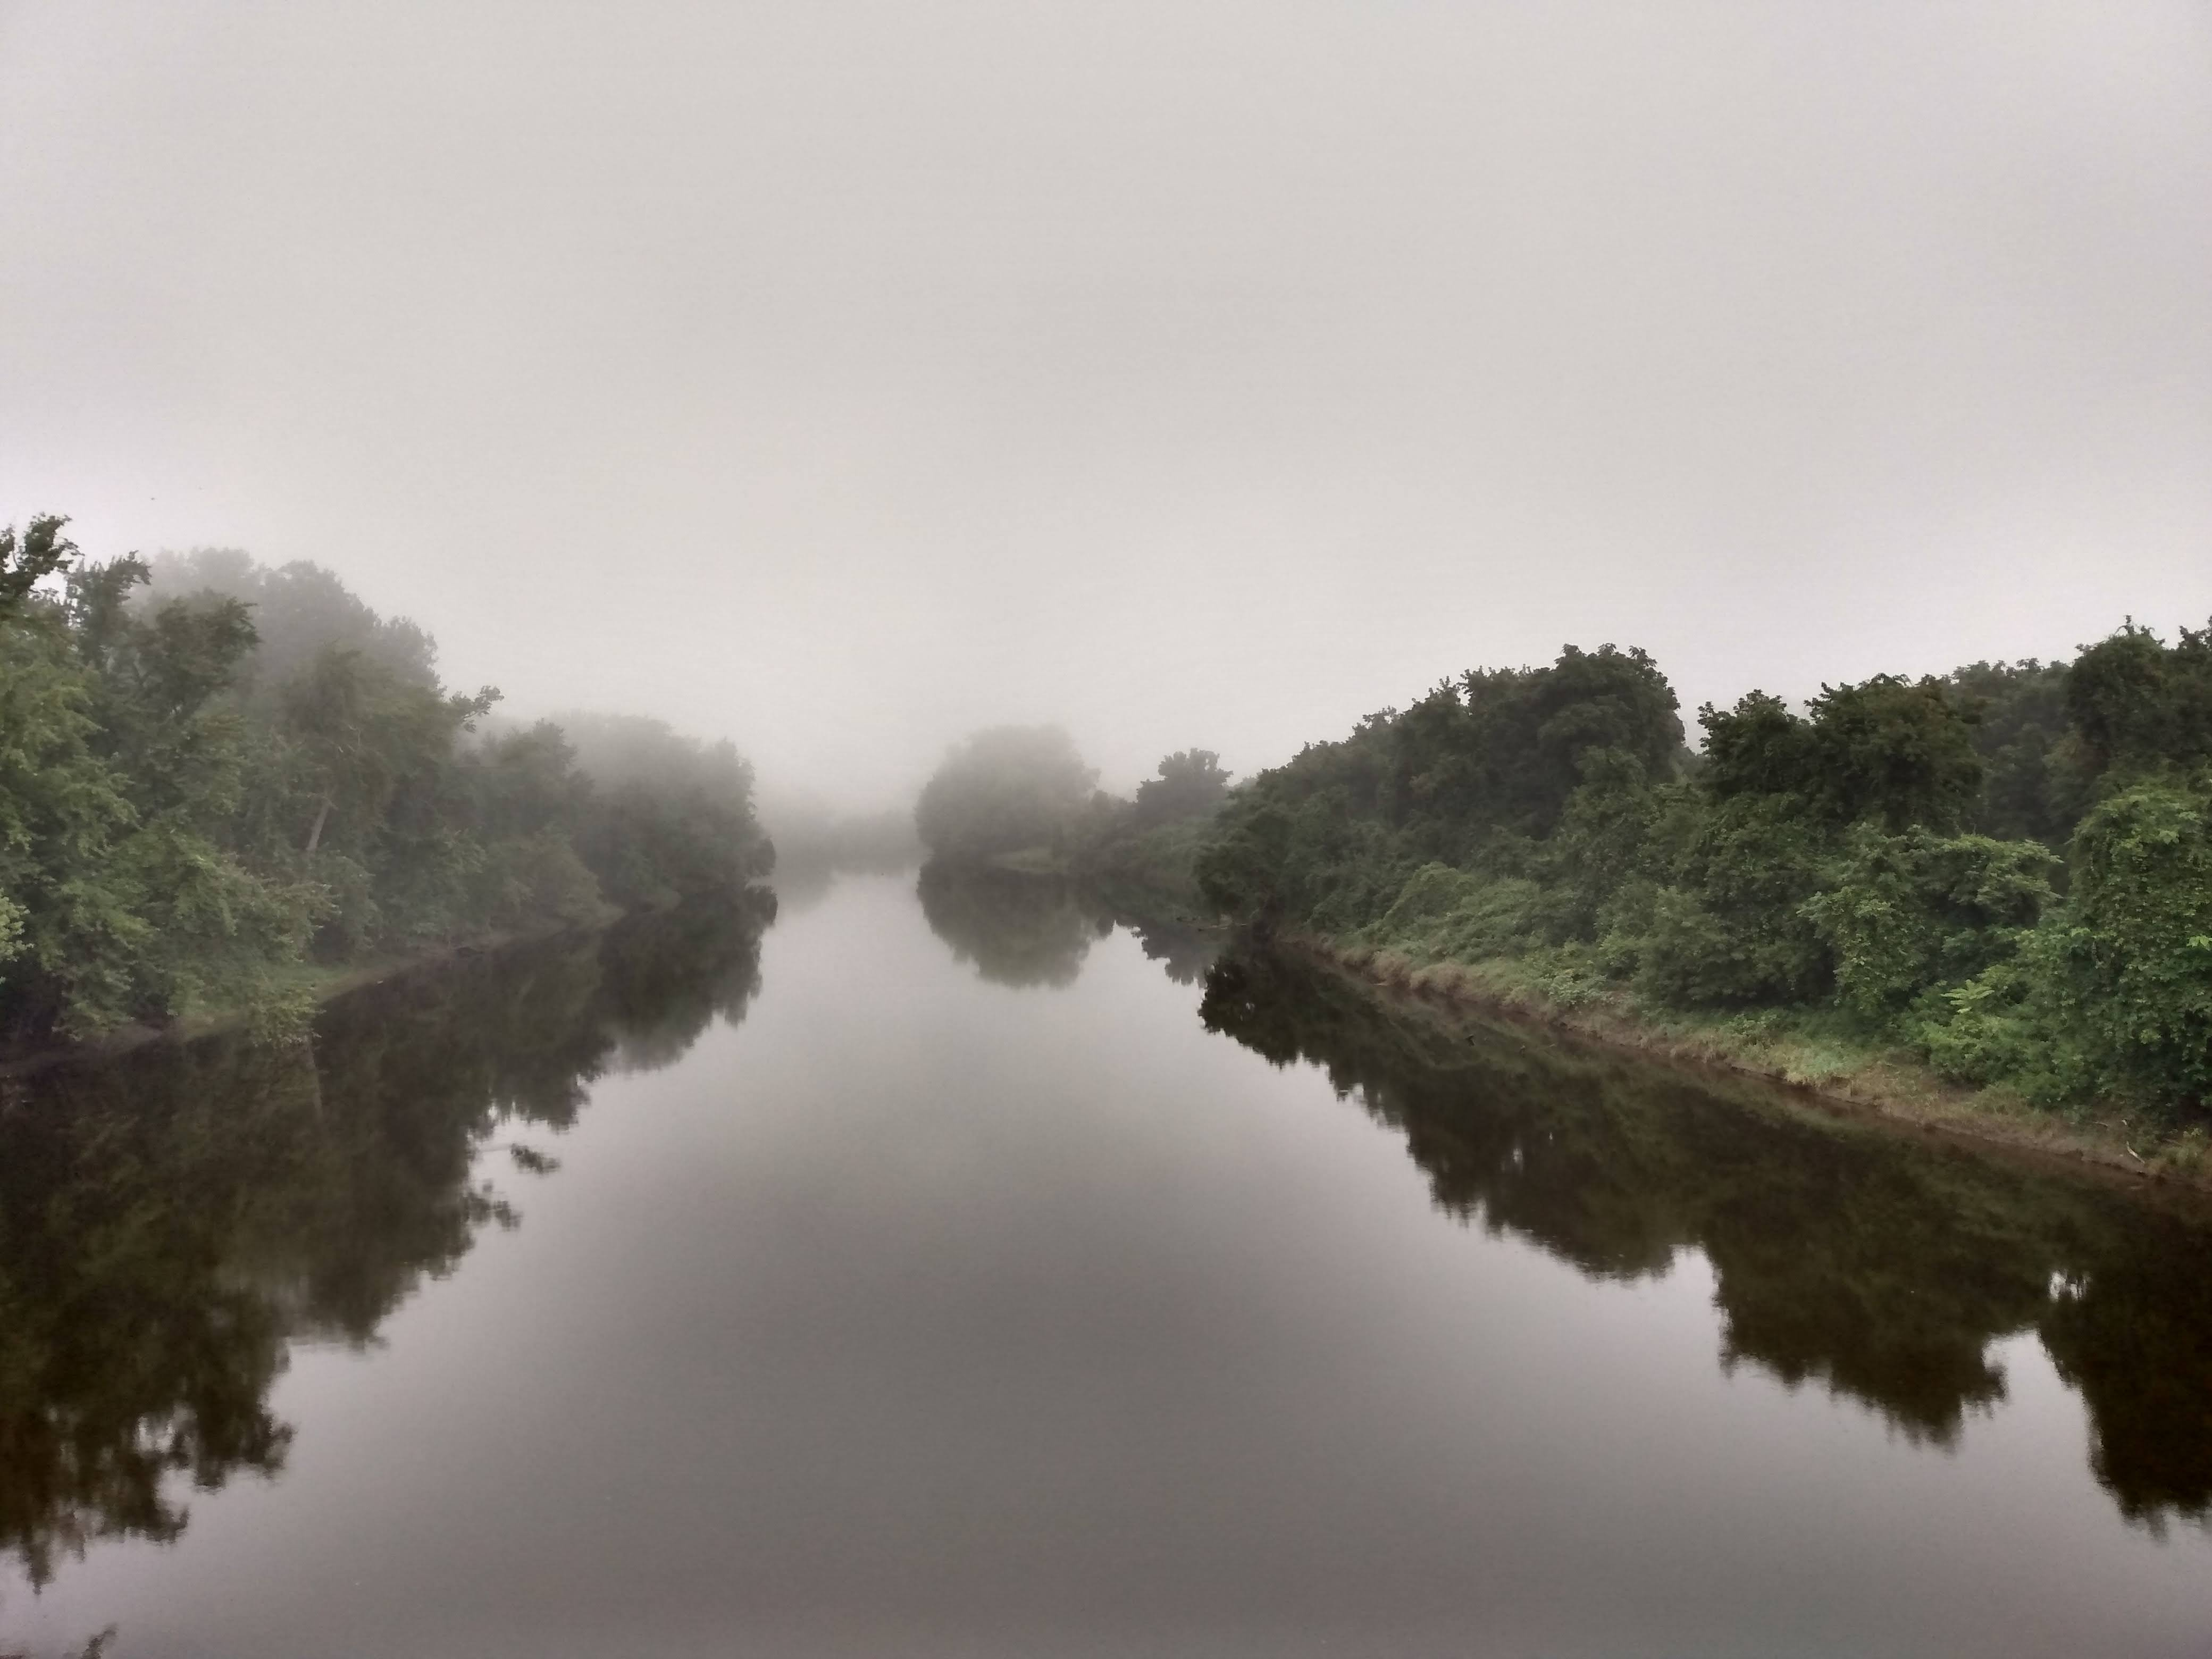 Fog on the Connecticut River